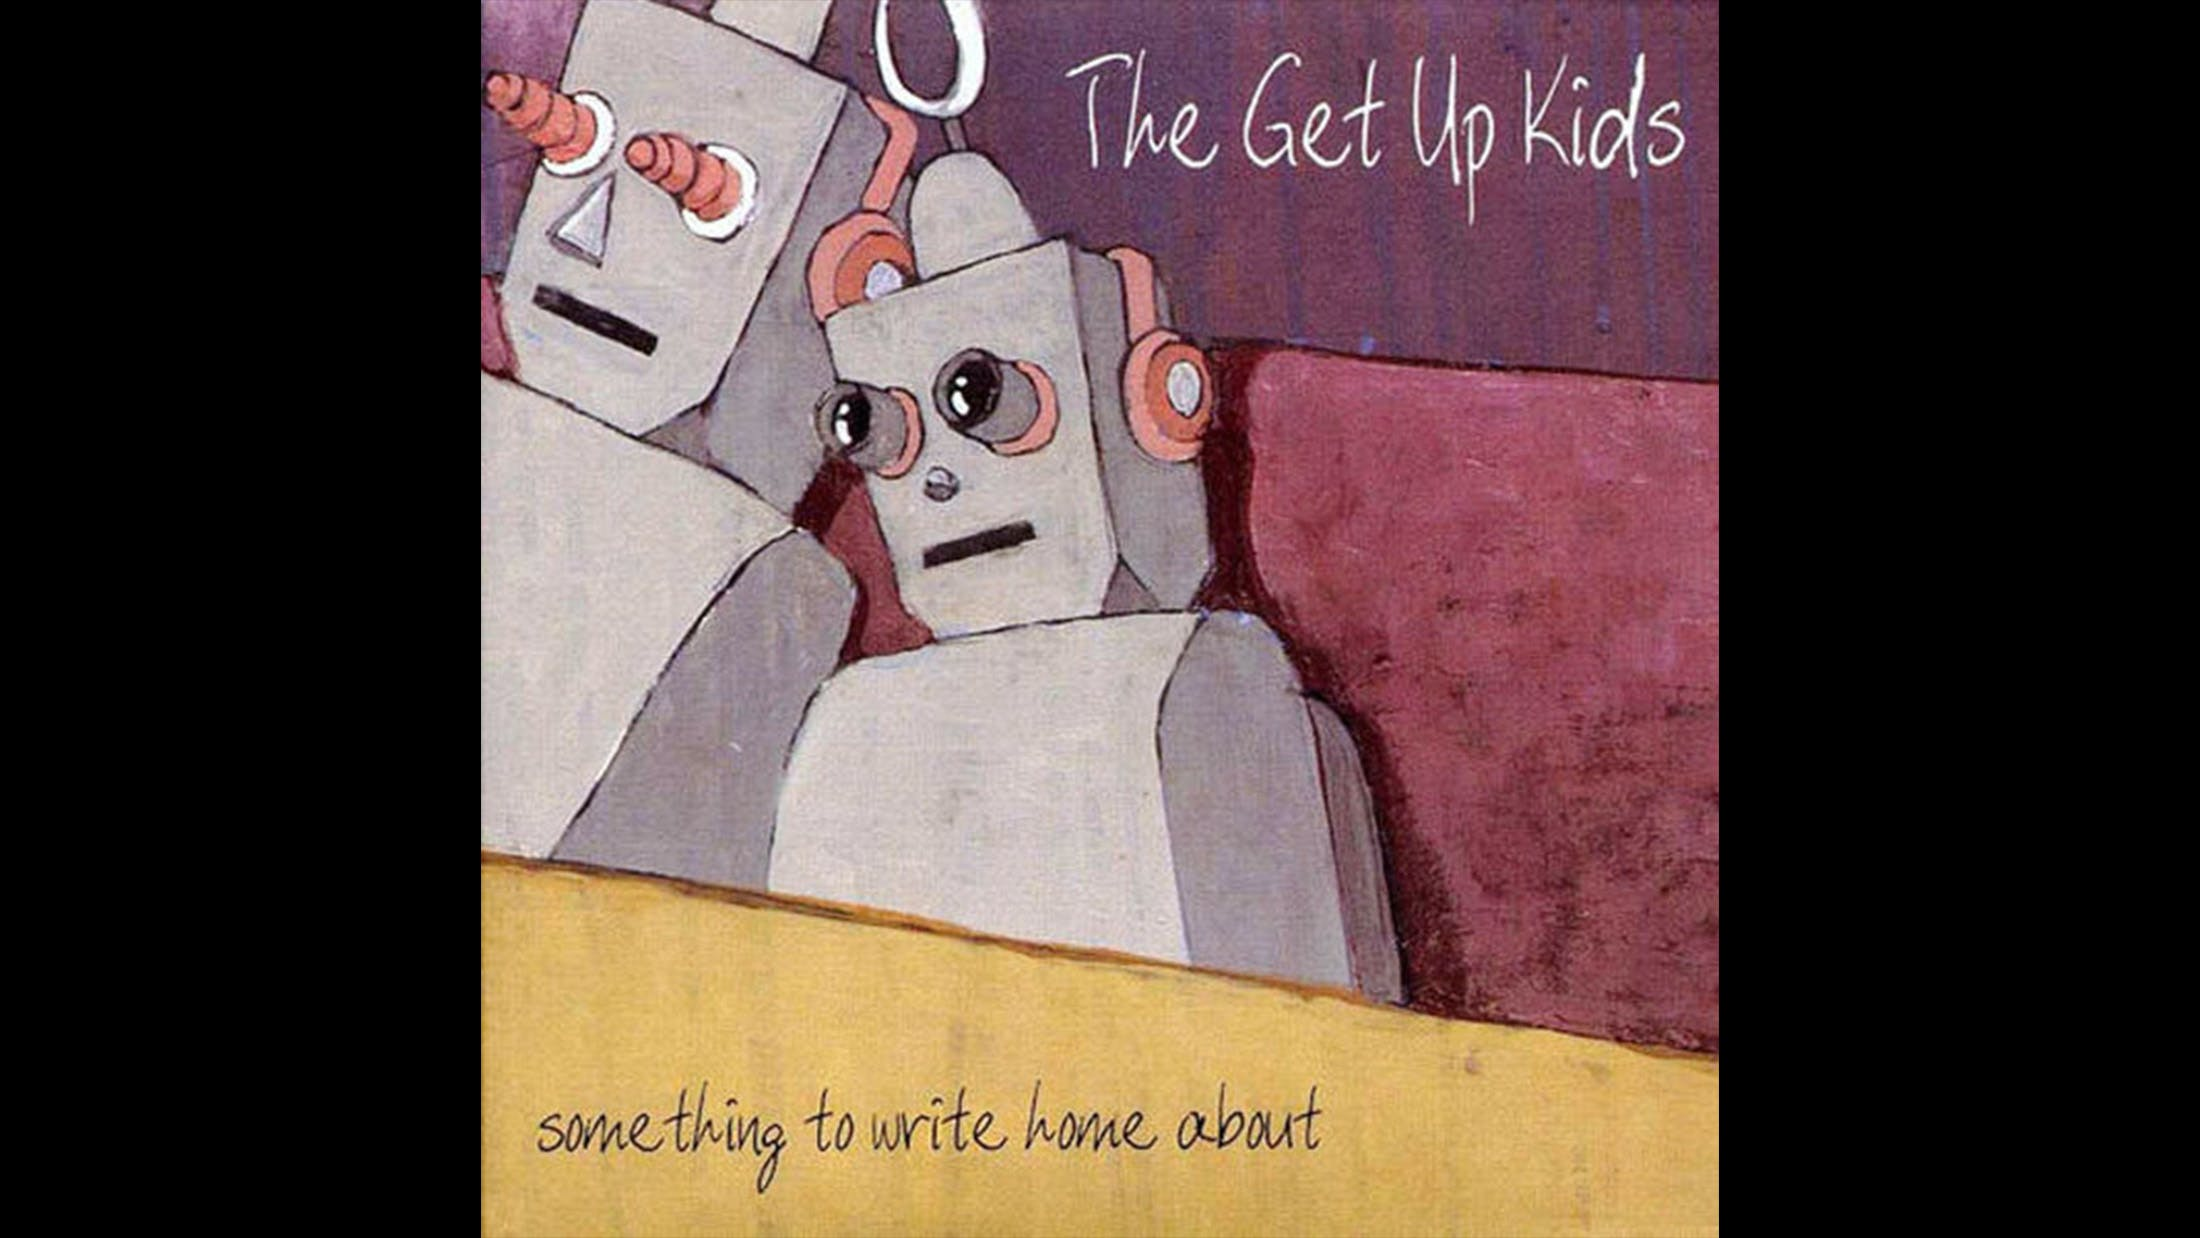 19. The Get Up Kids - Something To Write Home About (1999)